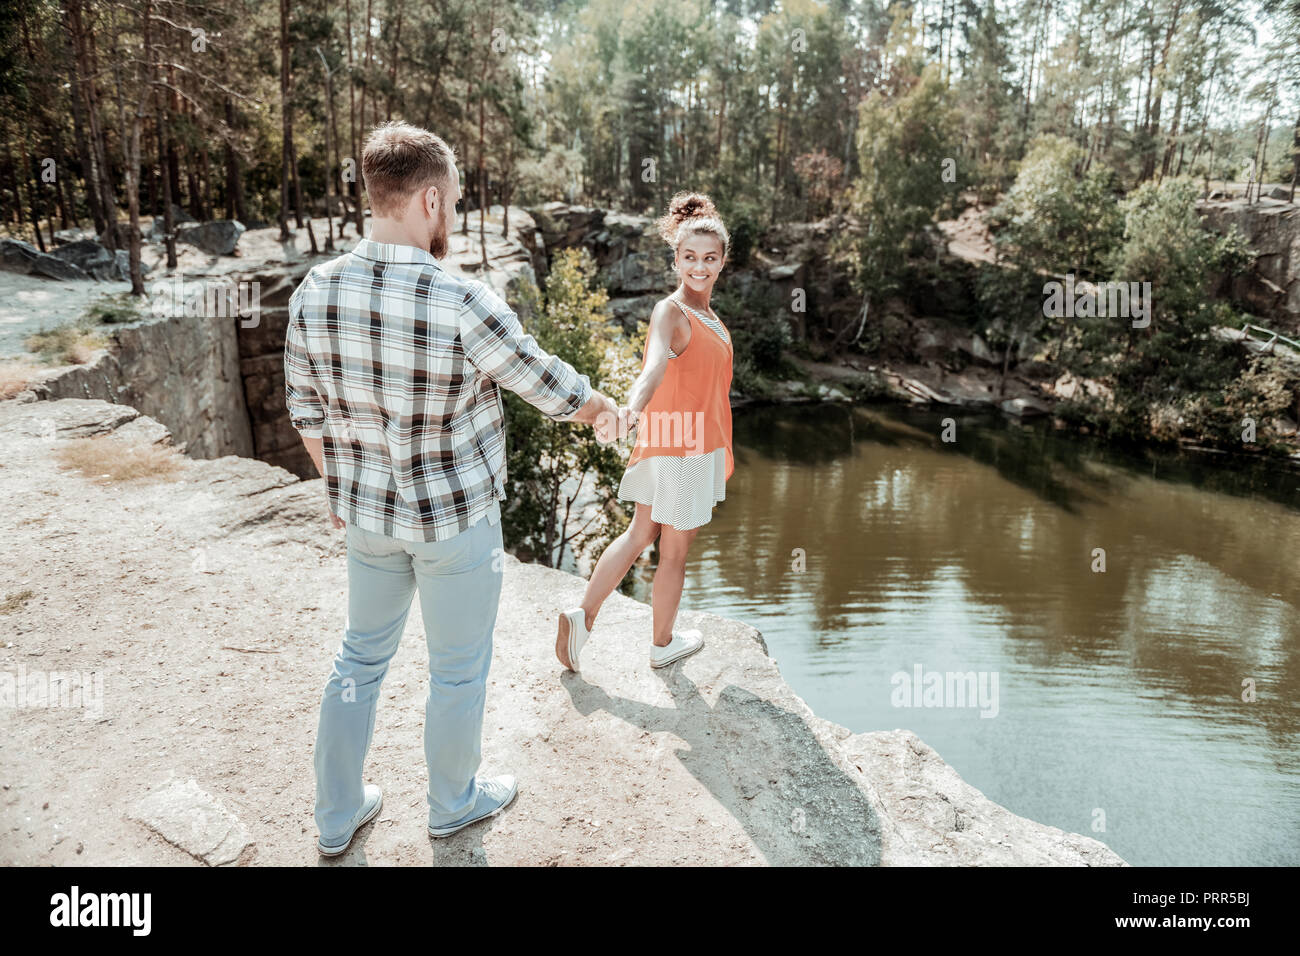 Strong supportive man holding hand of his beaming girlfriend coming closer to lake - Stock Image